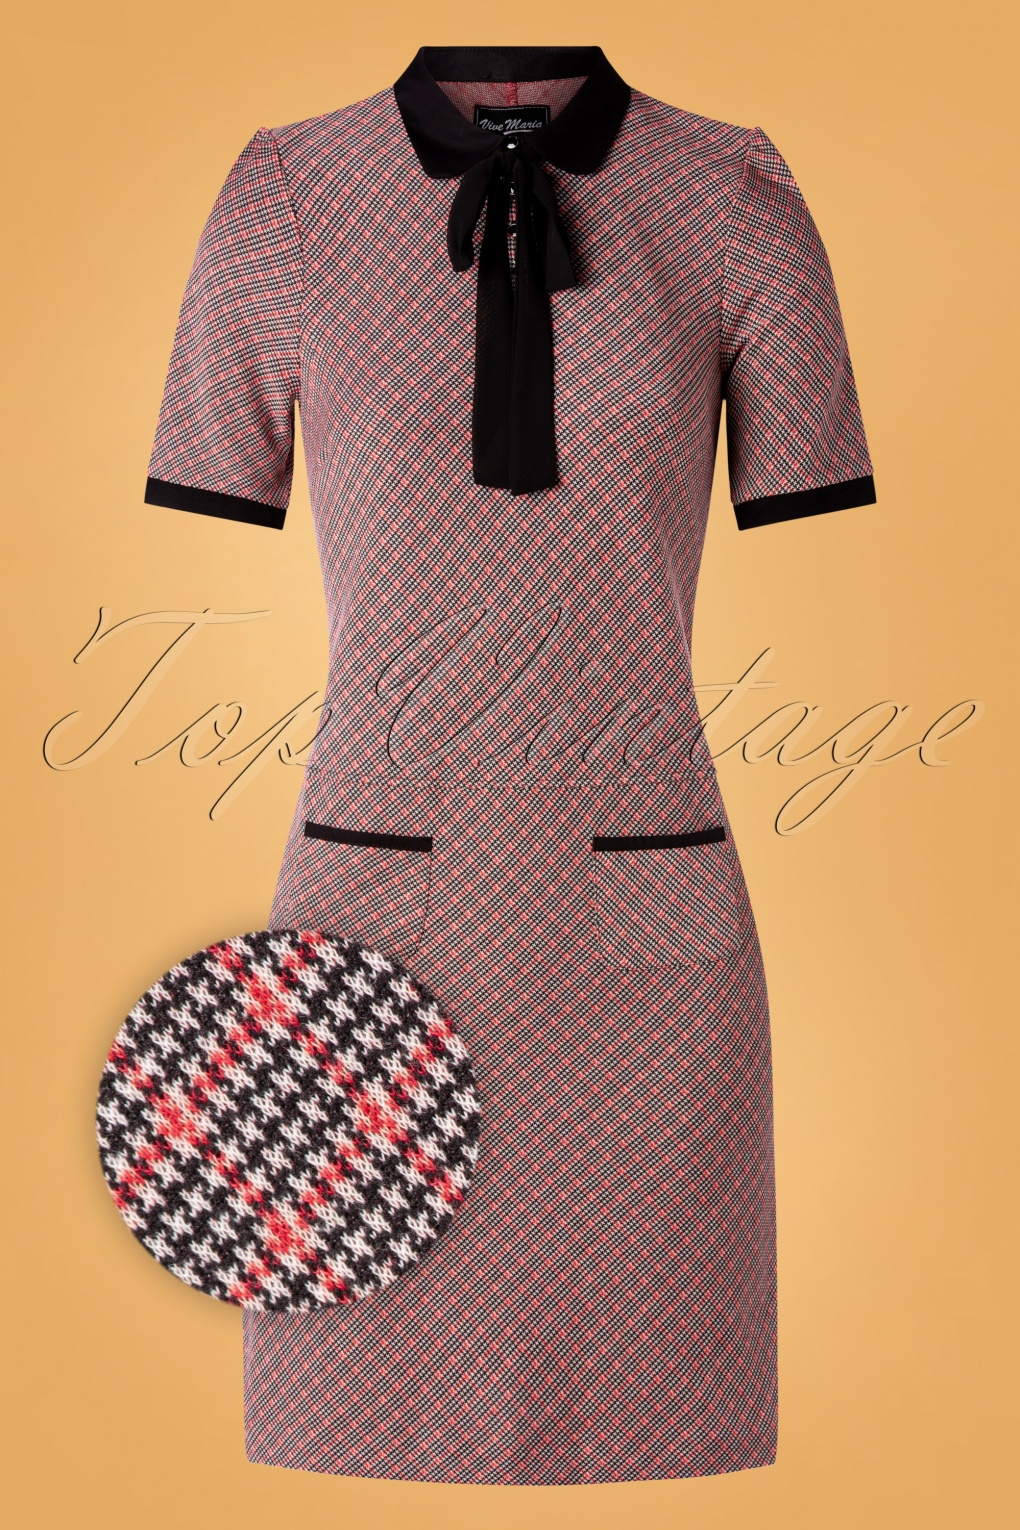 1960s Style Dresses, Clothing, Shoes UK 60s British School Dress in Red and Black £80.77 AT vintagedancer.com